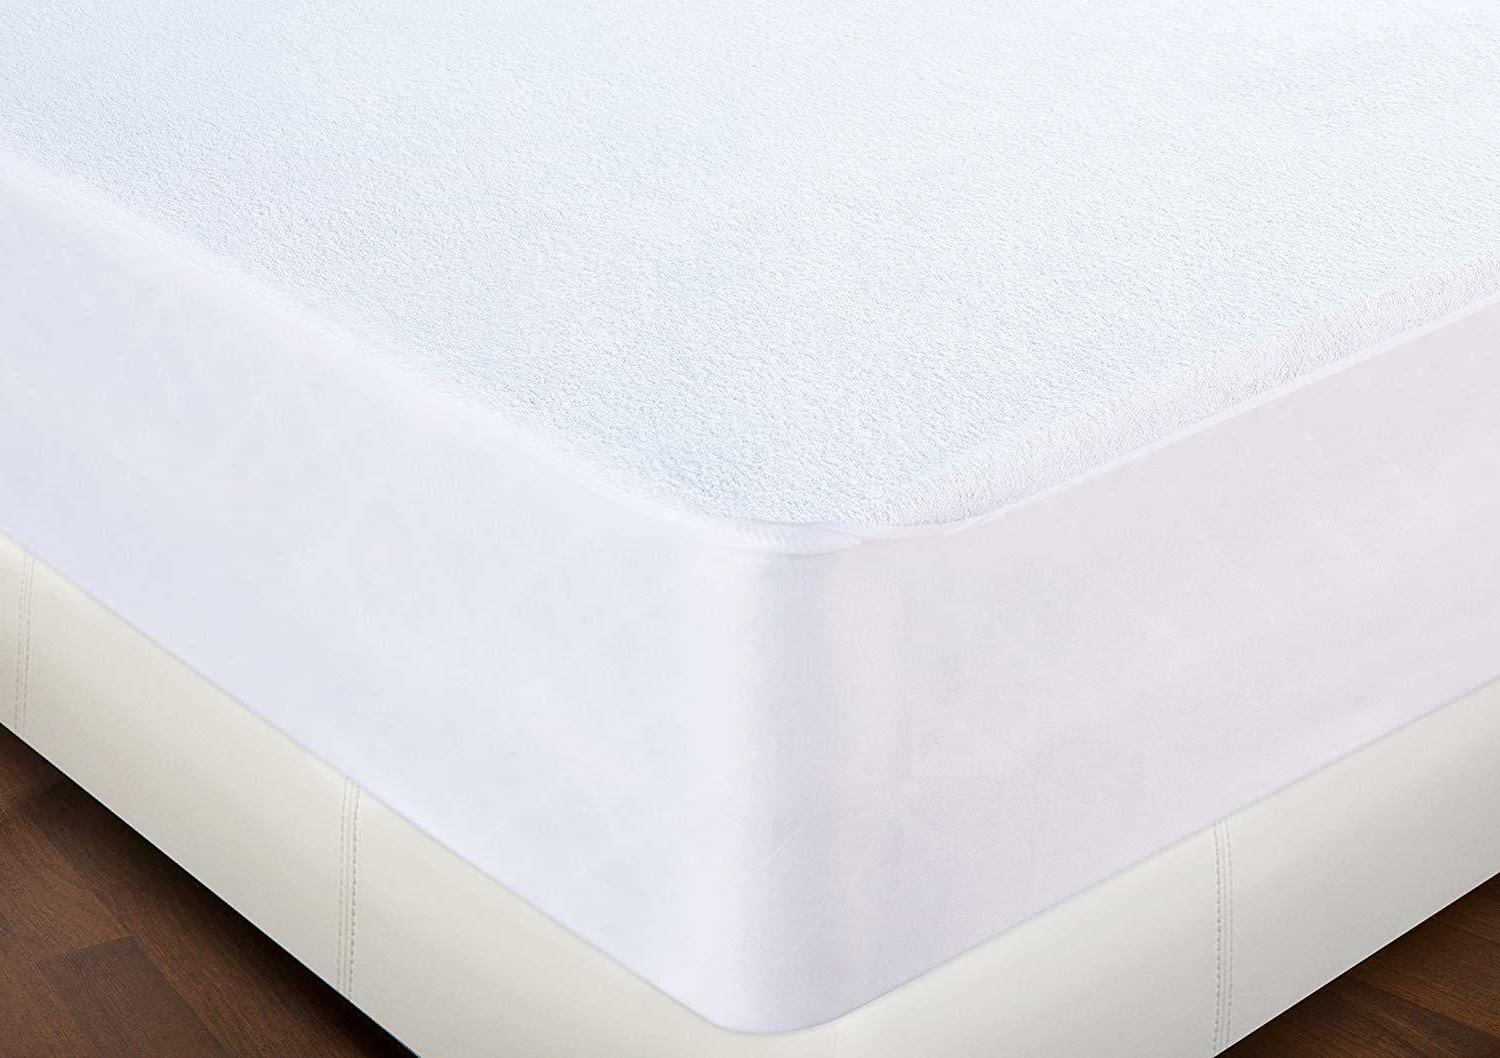 Hypoallergenic Waterproof Fitted Premium by Utopia Bedding